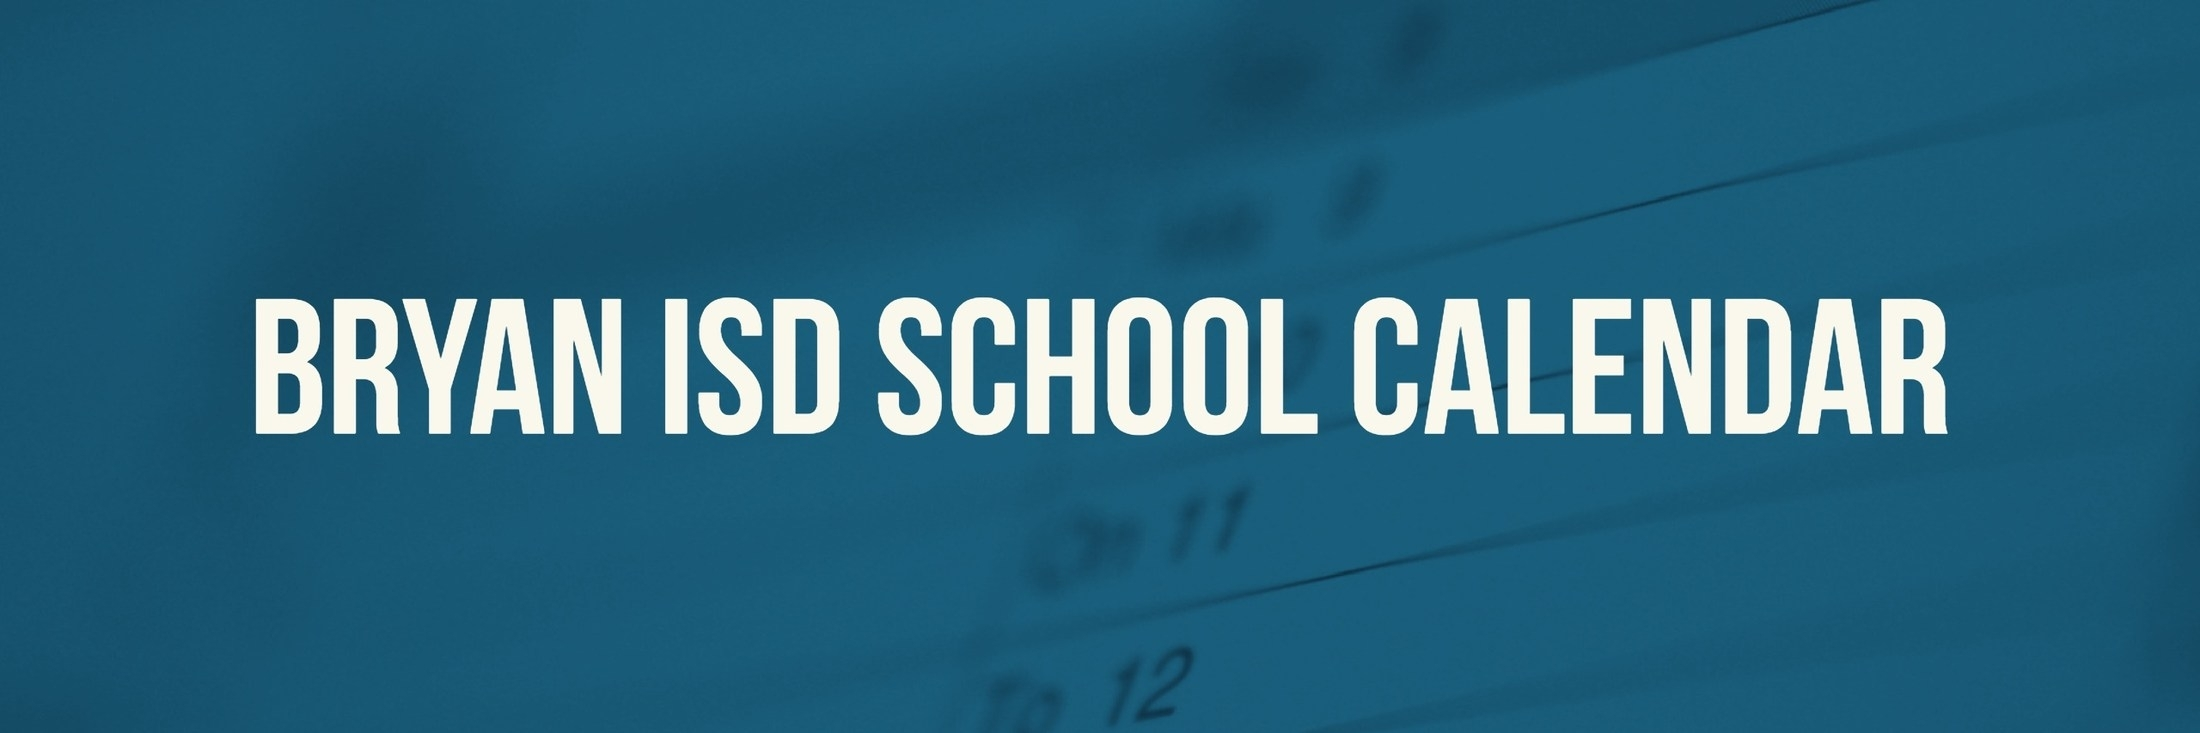 School Calendar, Testing & Fine Arts/athletics Events throughout Jan 2020 Calendar For Stephen F Austin